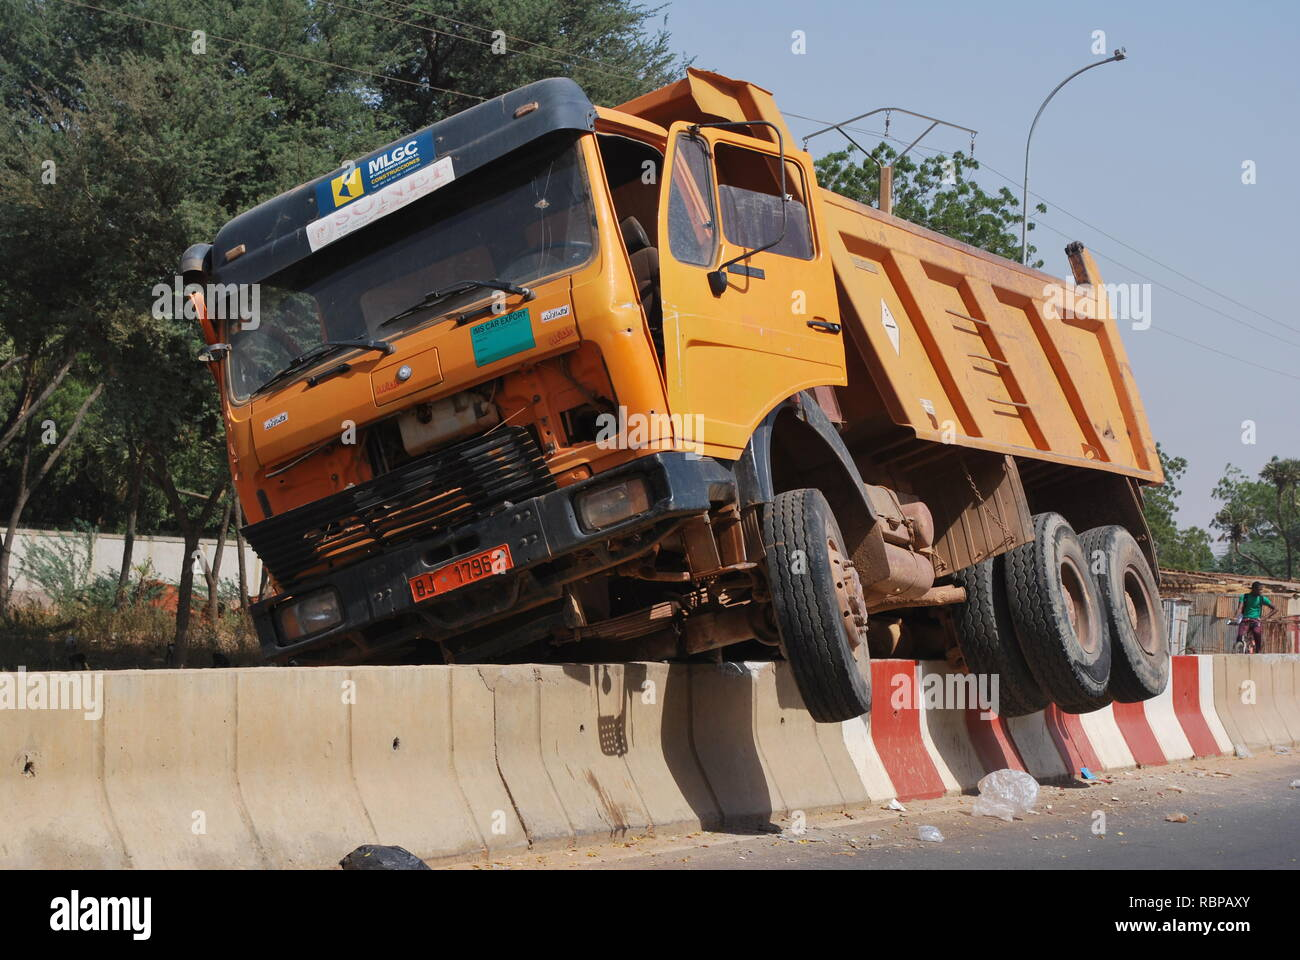 A dump truck high-centered on a cement barrier in Niamey, Niger,  Africa - Stock Image